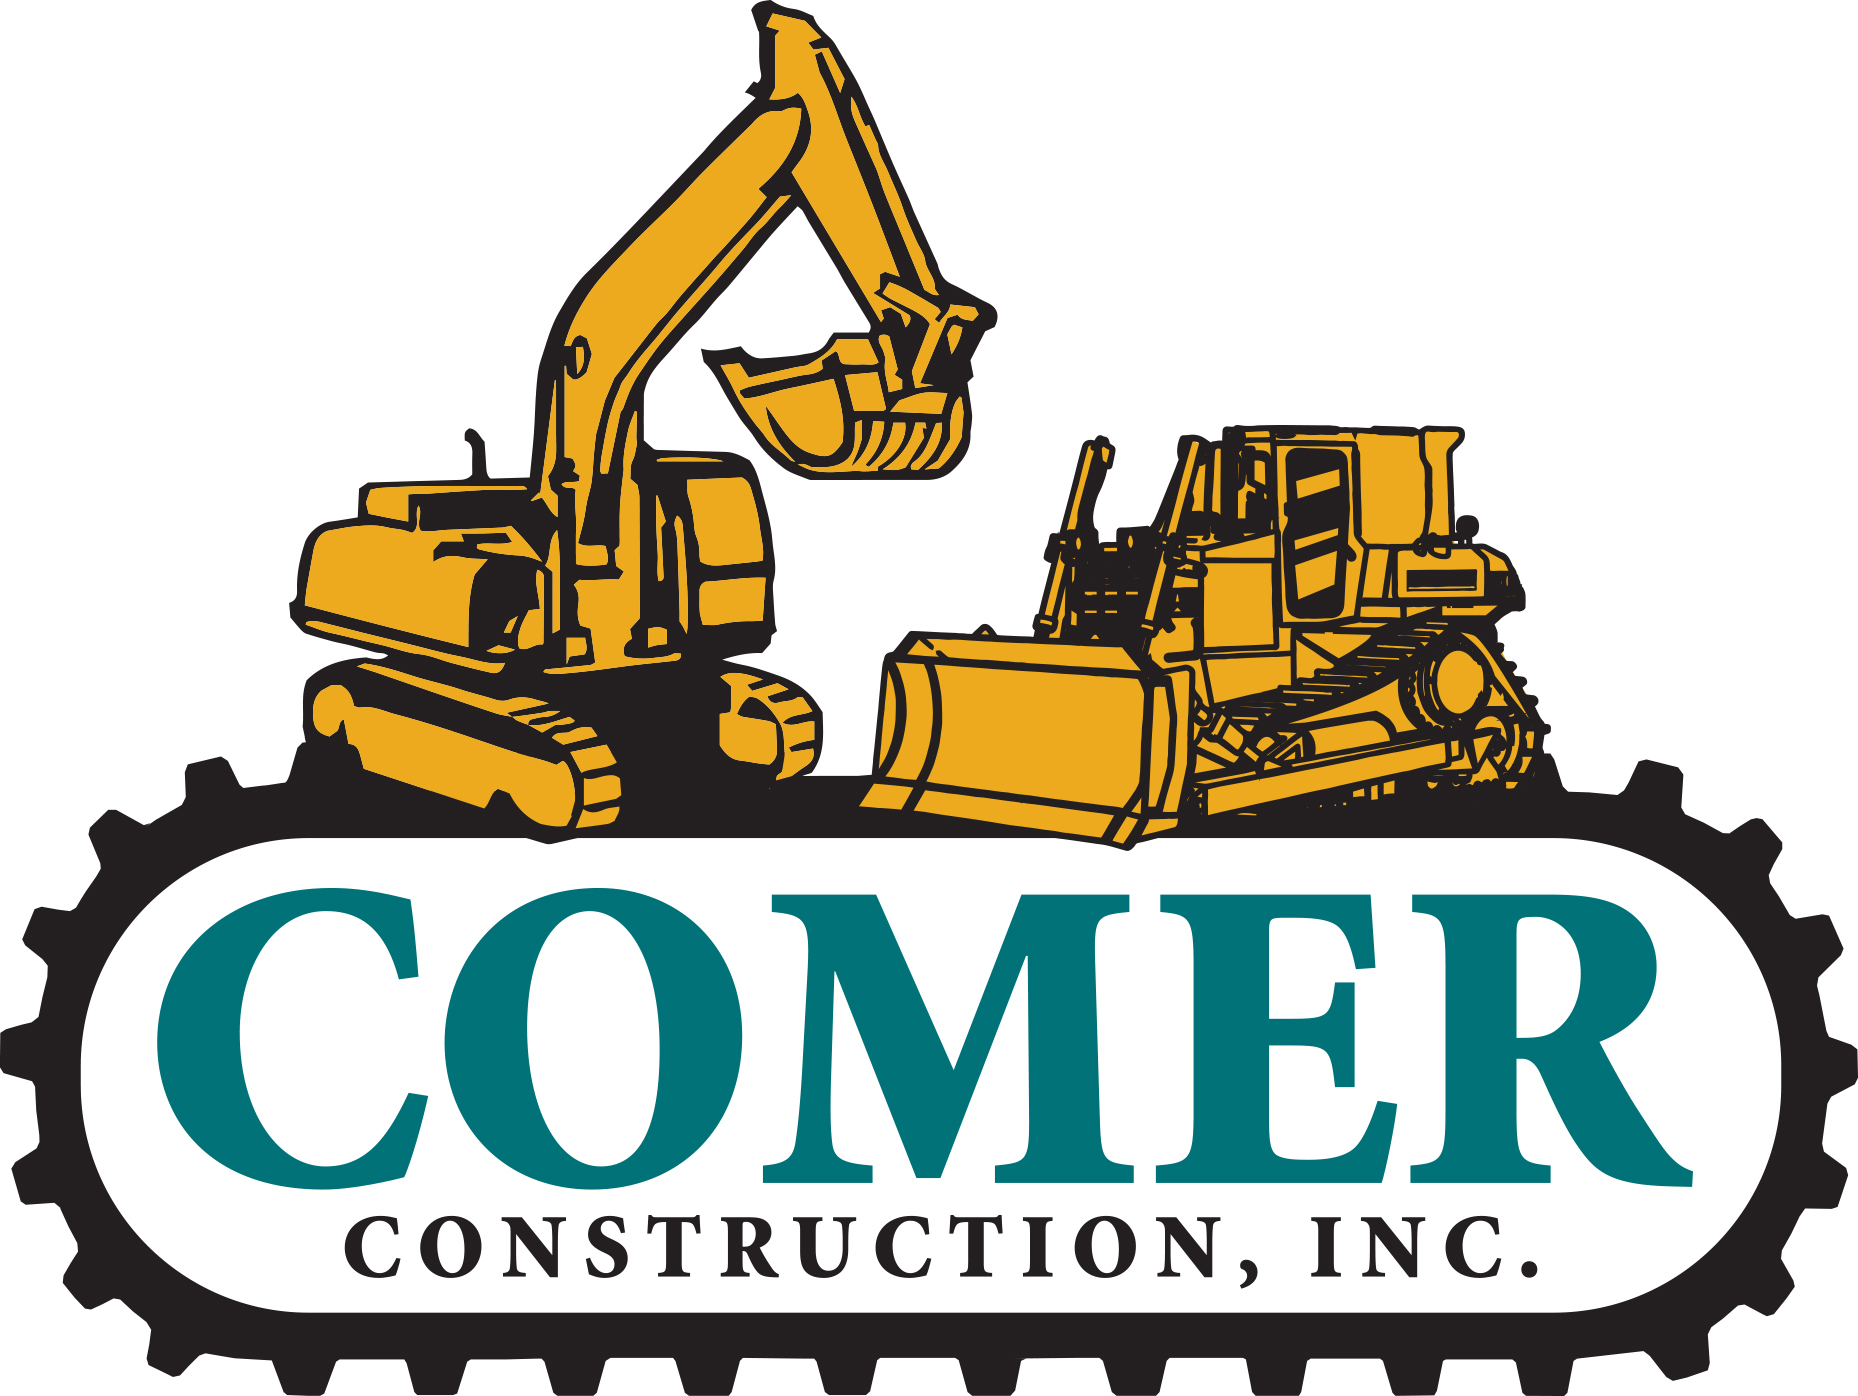 comer construction celebrates 35 years in business and